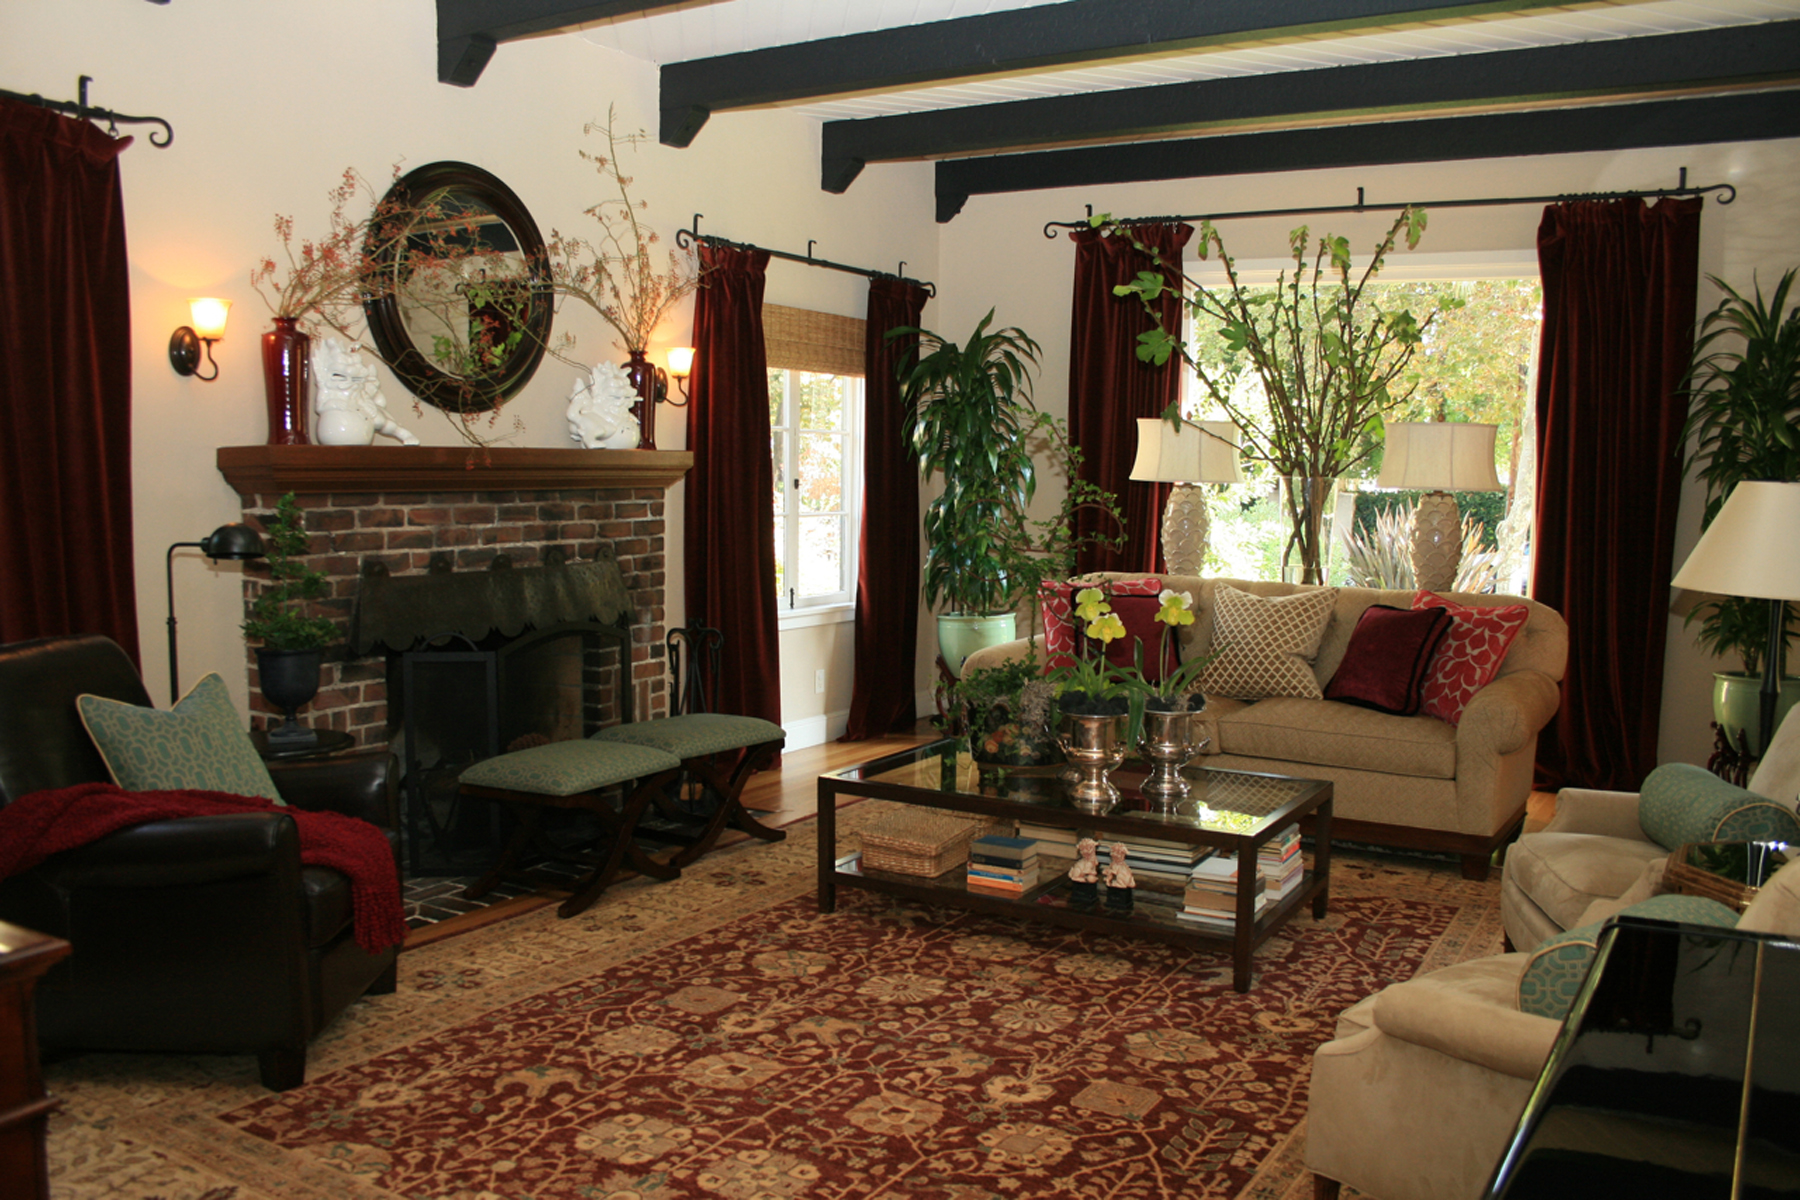 Interior Amazing Classic Spanish Style Of Living Room Design With Stone  Fireplace Red Curtain LArge Carpet